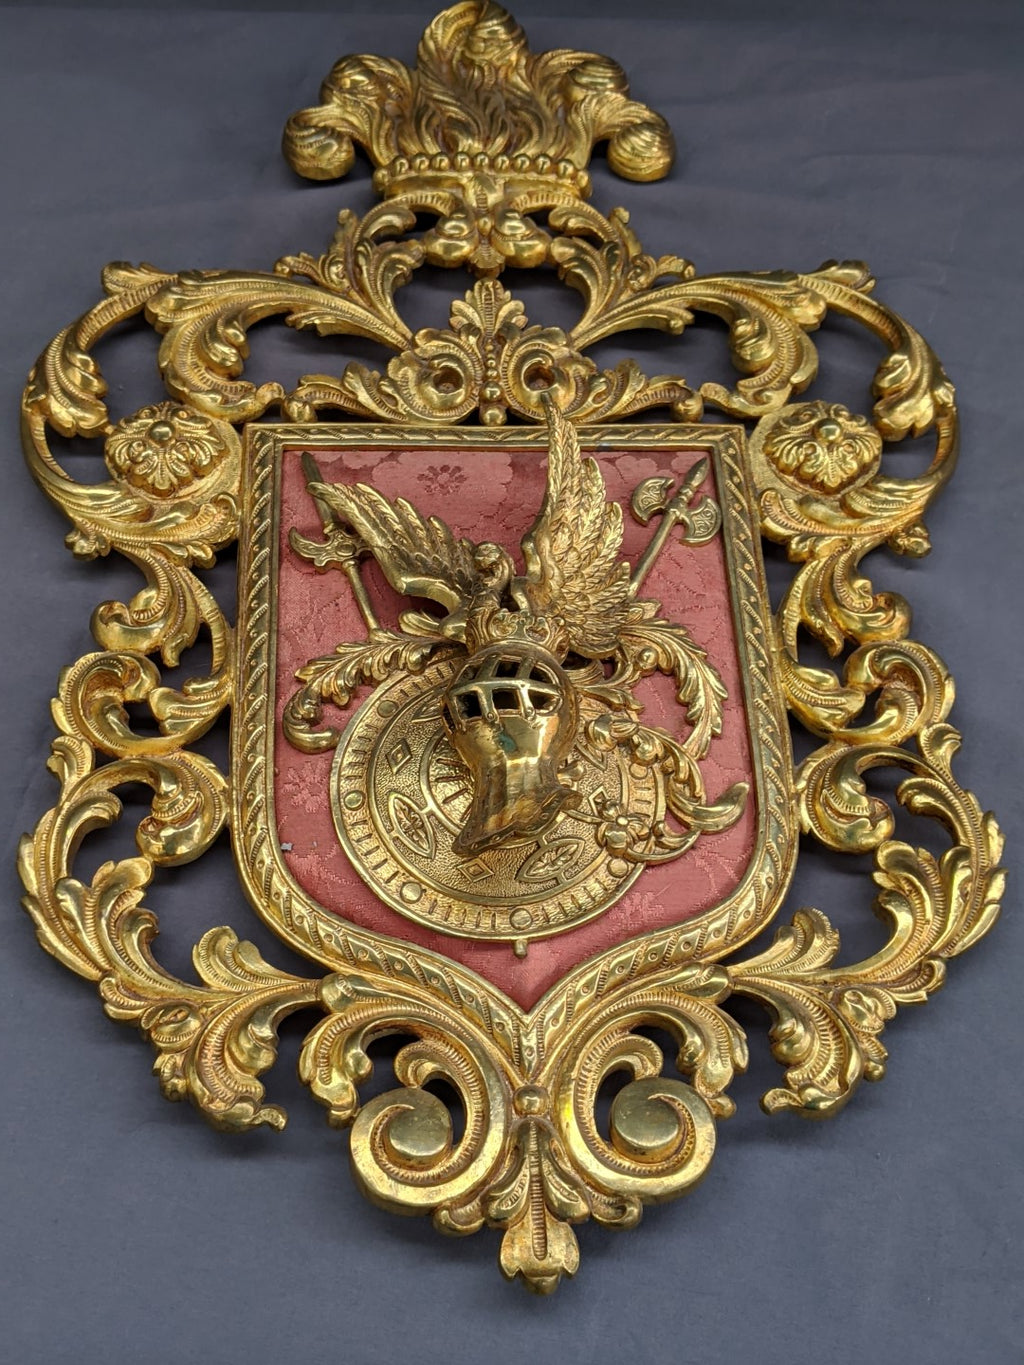 BRASS FANCY COAT OF ARMS